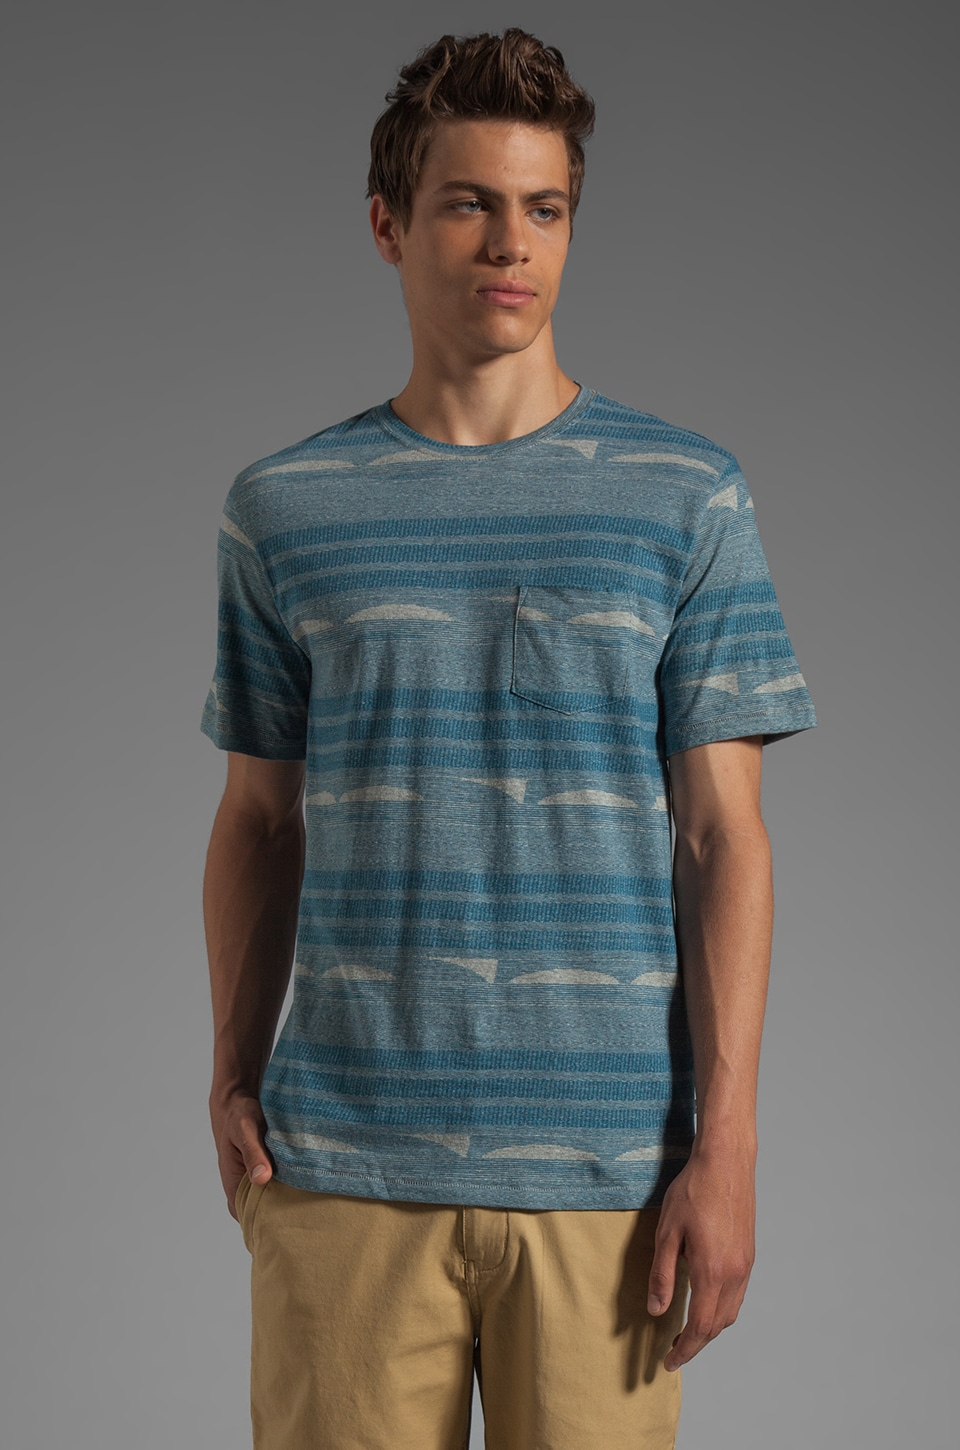 V.S.T.R Horizon Tee in Ensign Blue